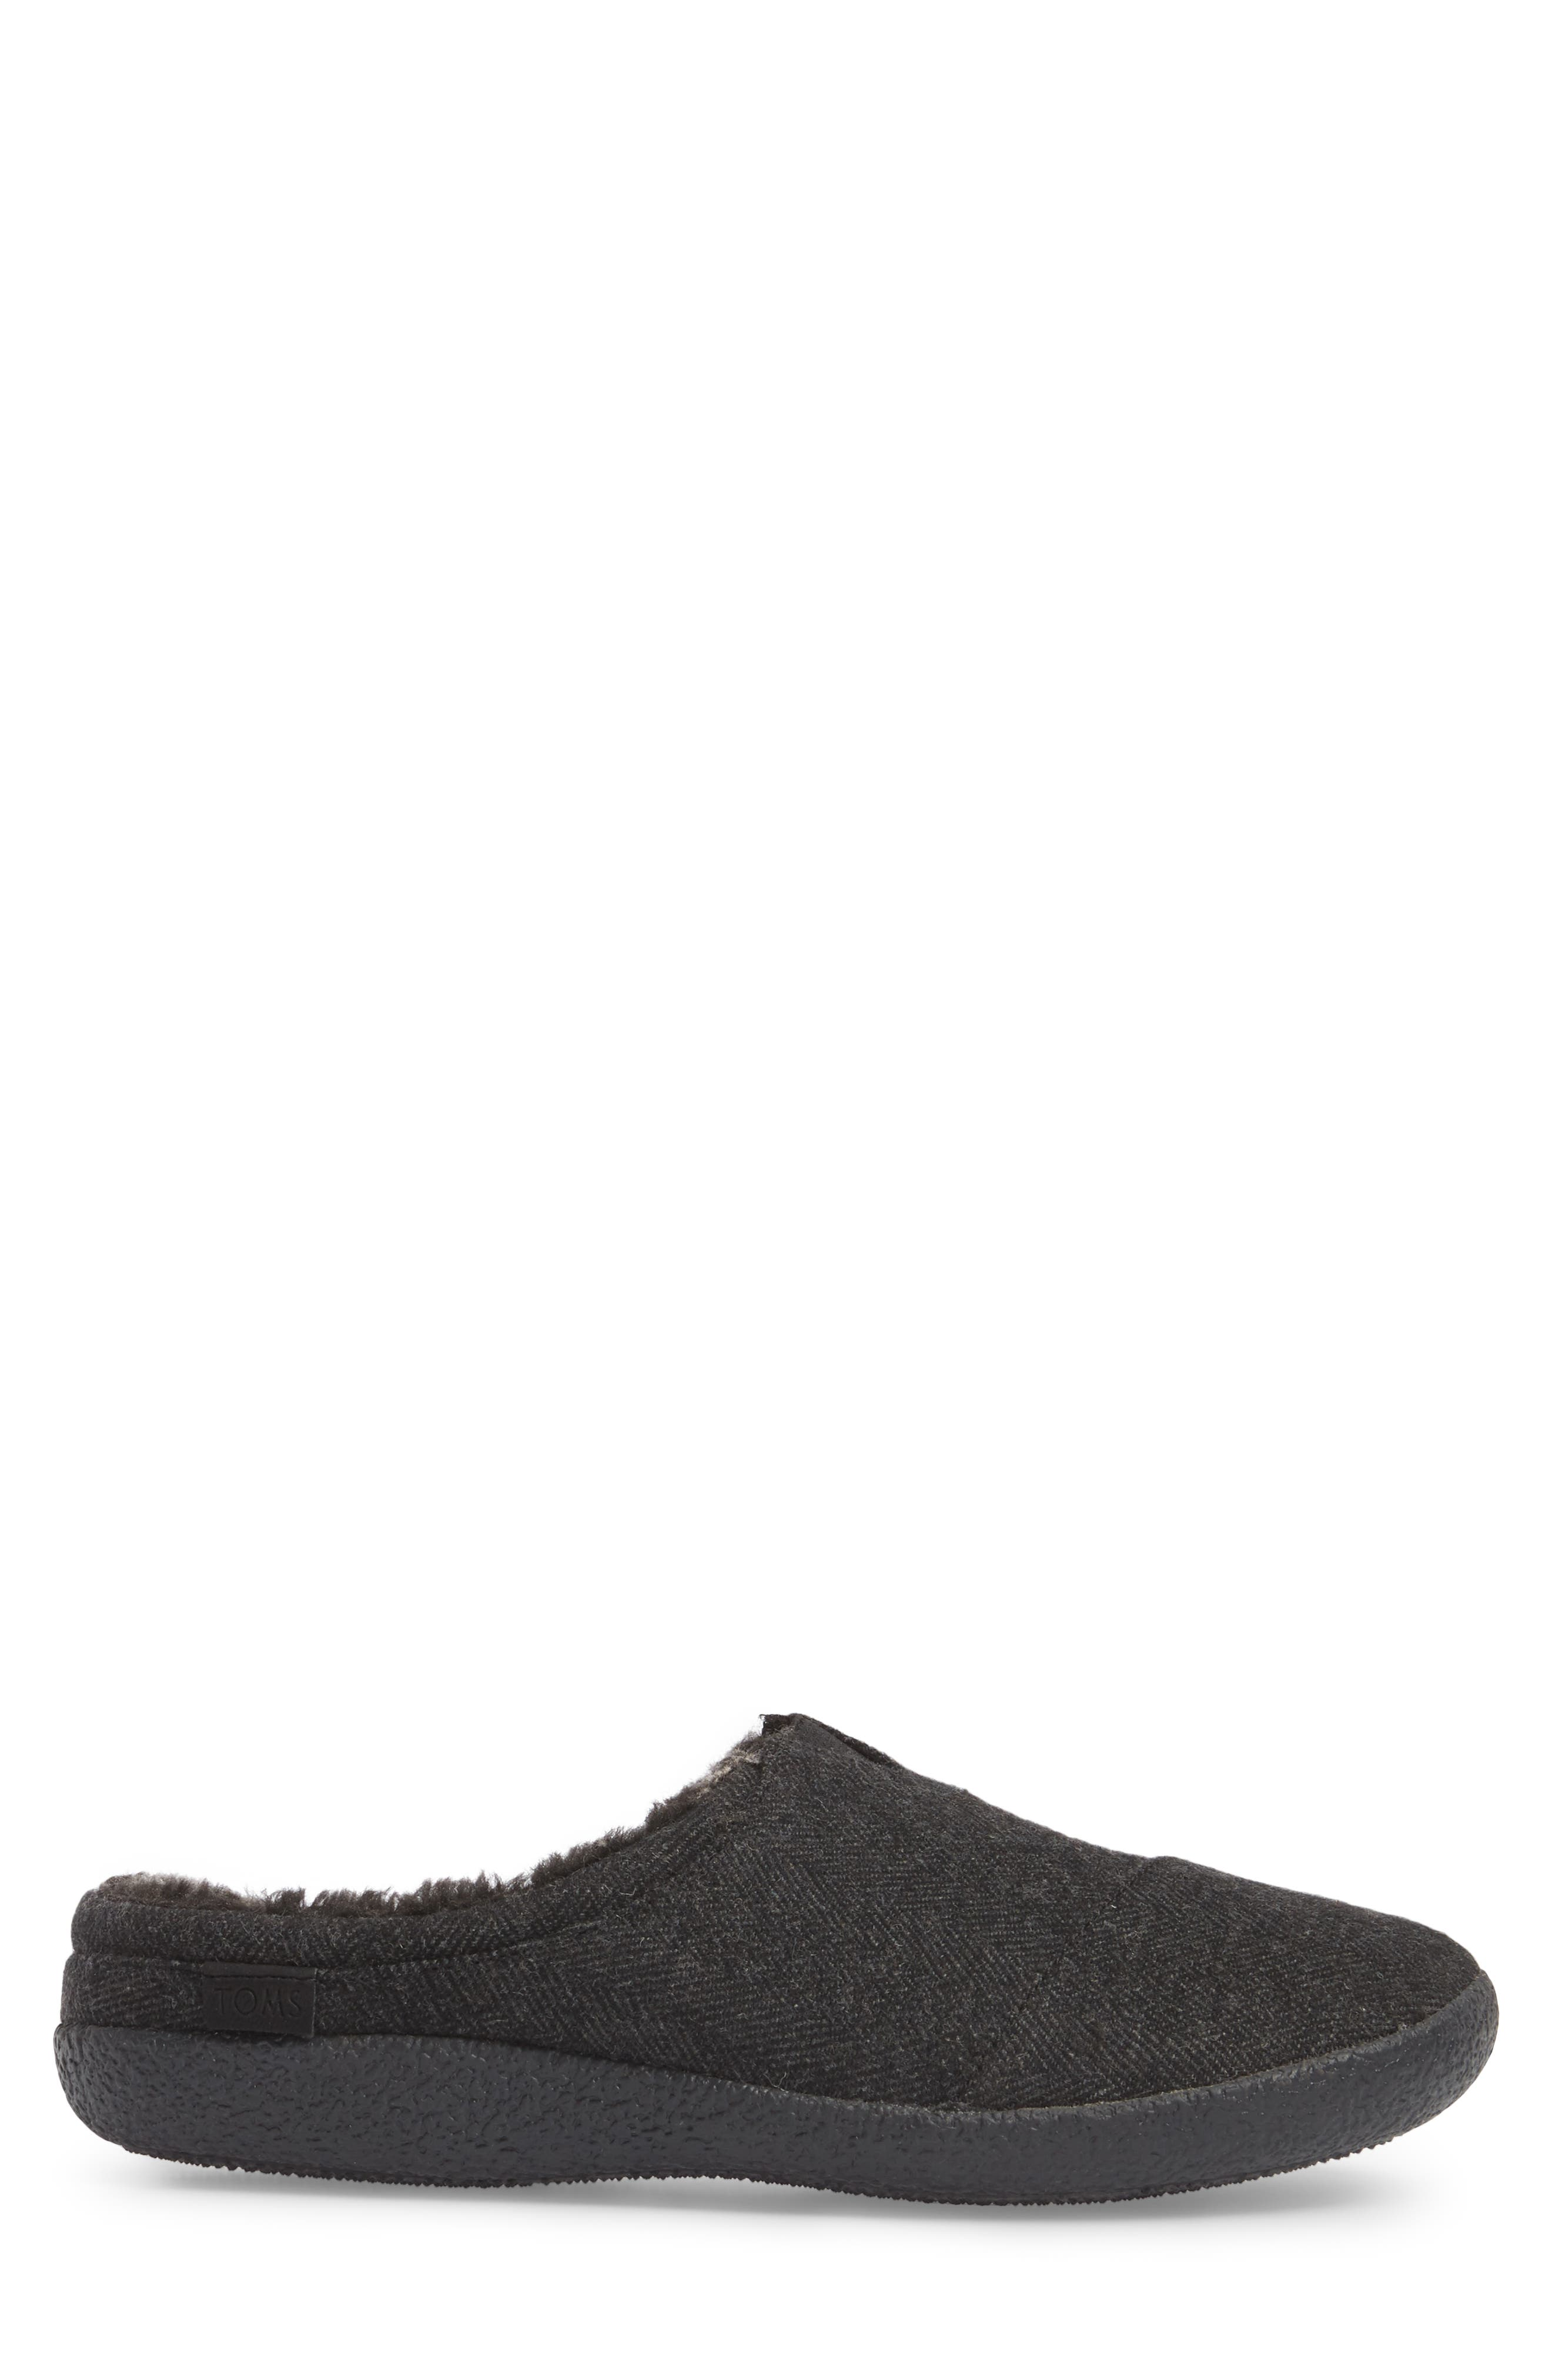 Berkeley Slipper with Faux Fur Lining,                             Alternate thumbnail 3, color,                             001